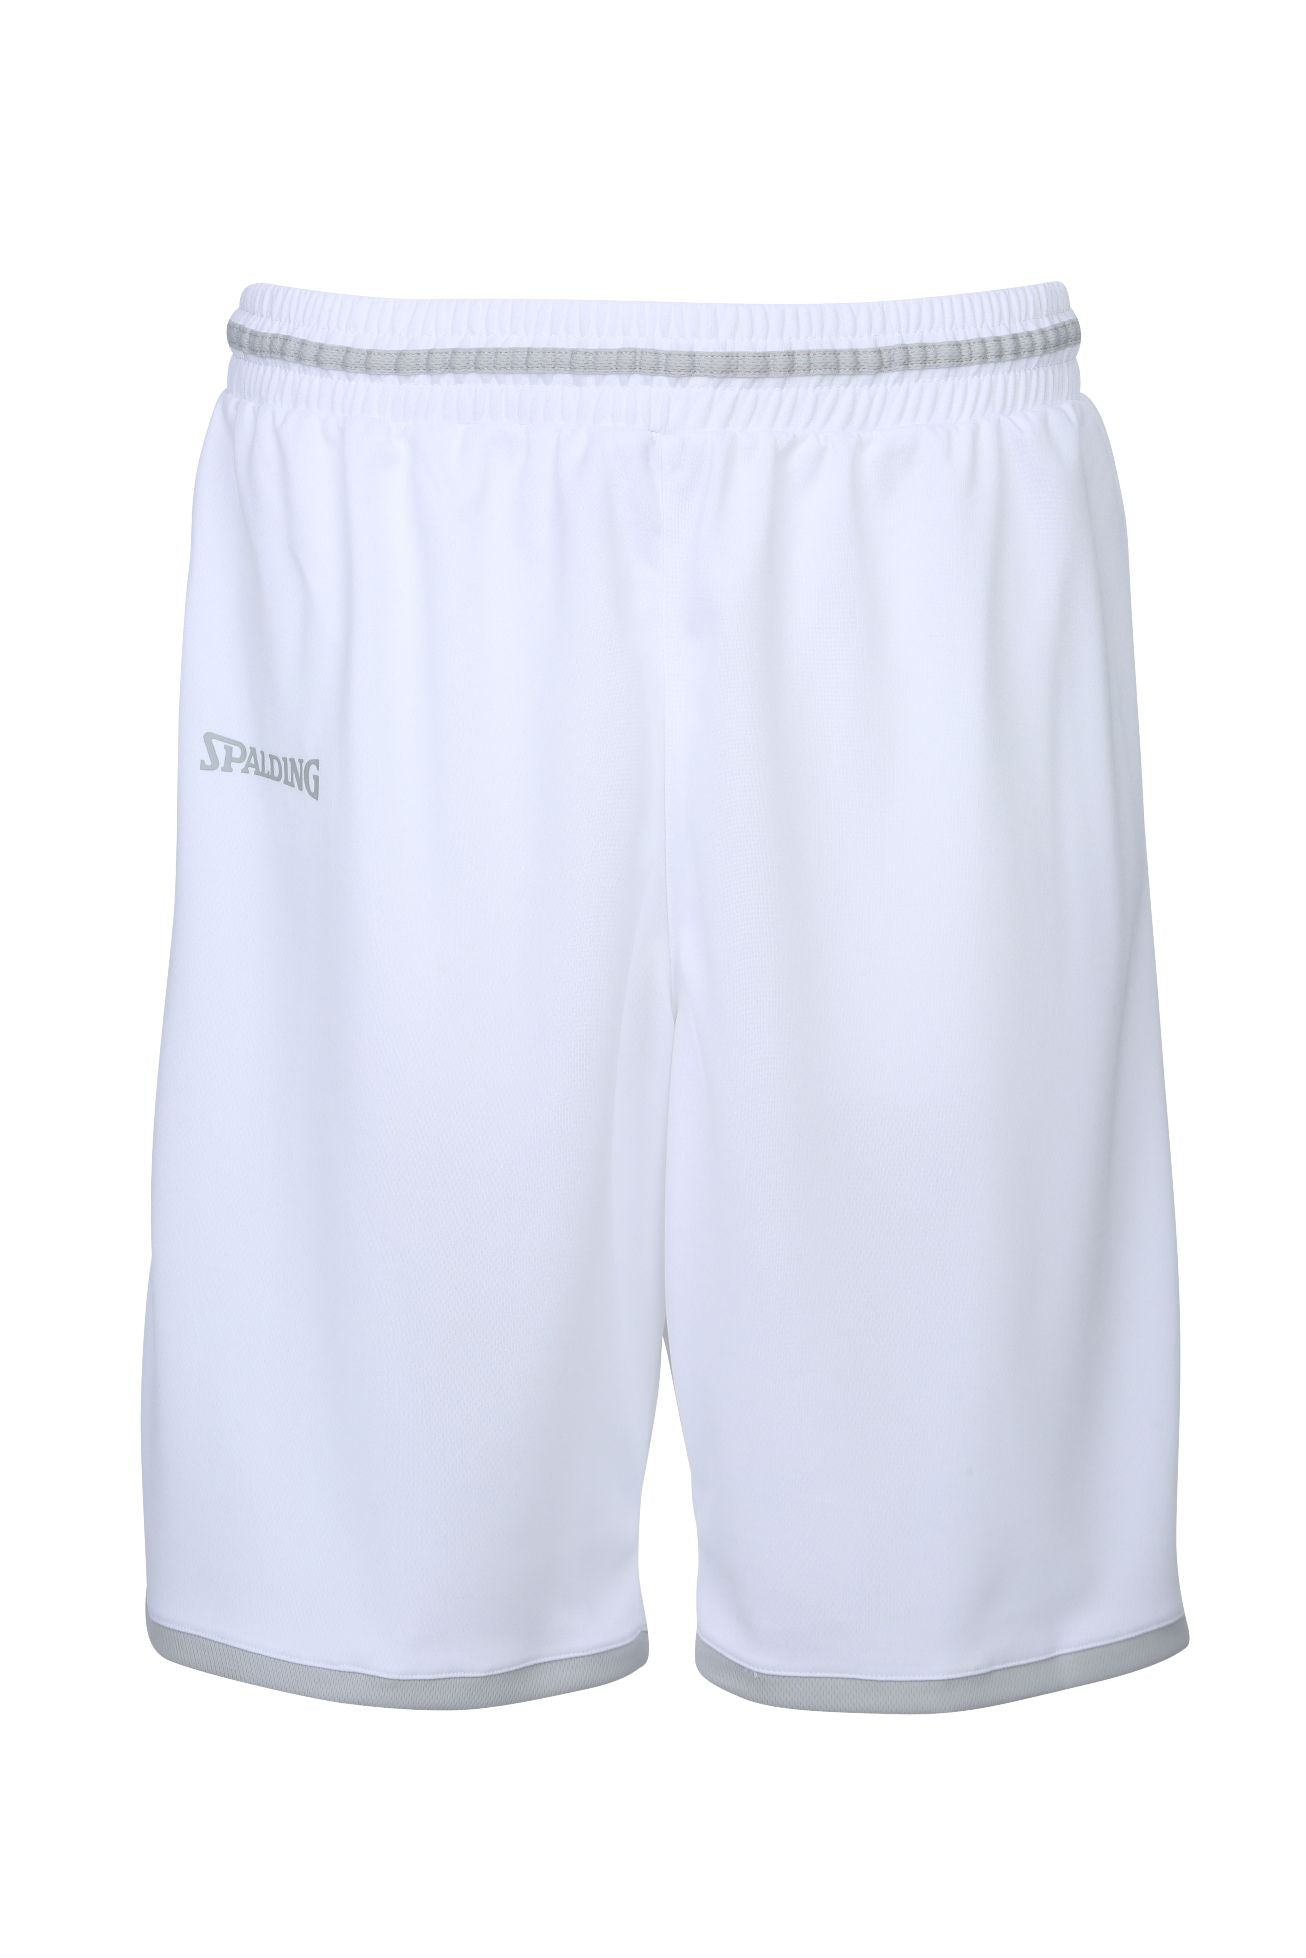 Teamwear - Spalding Men's Move Shorts - White/Silver Grey - SP-3002140-02-3005140-02